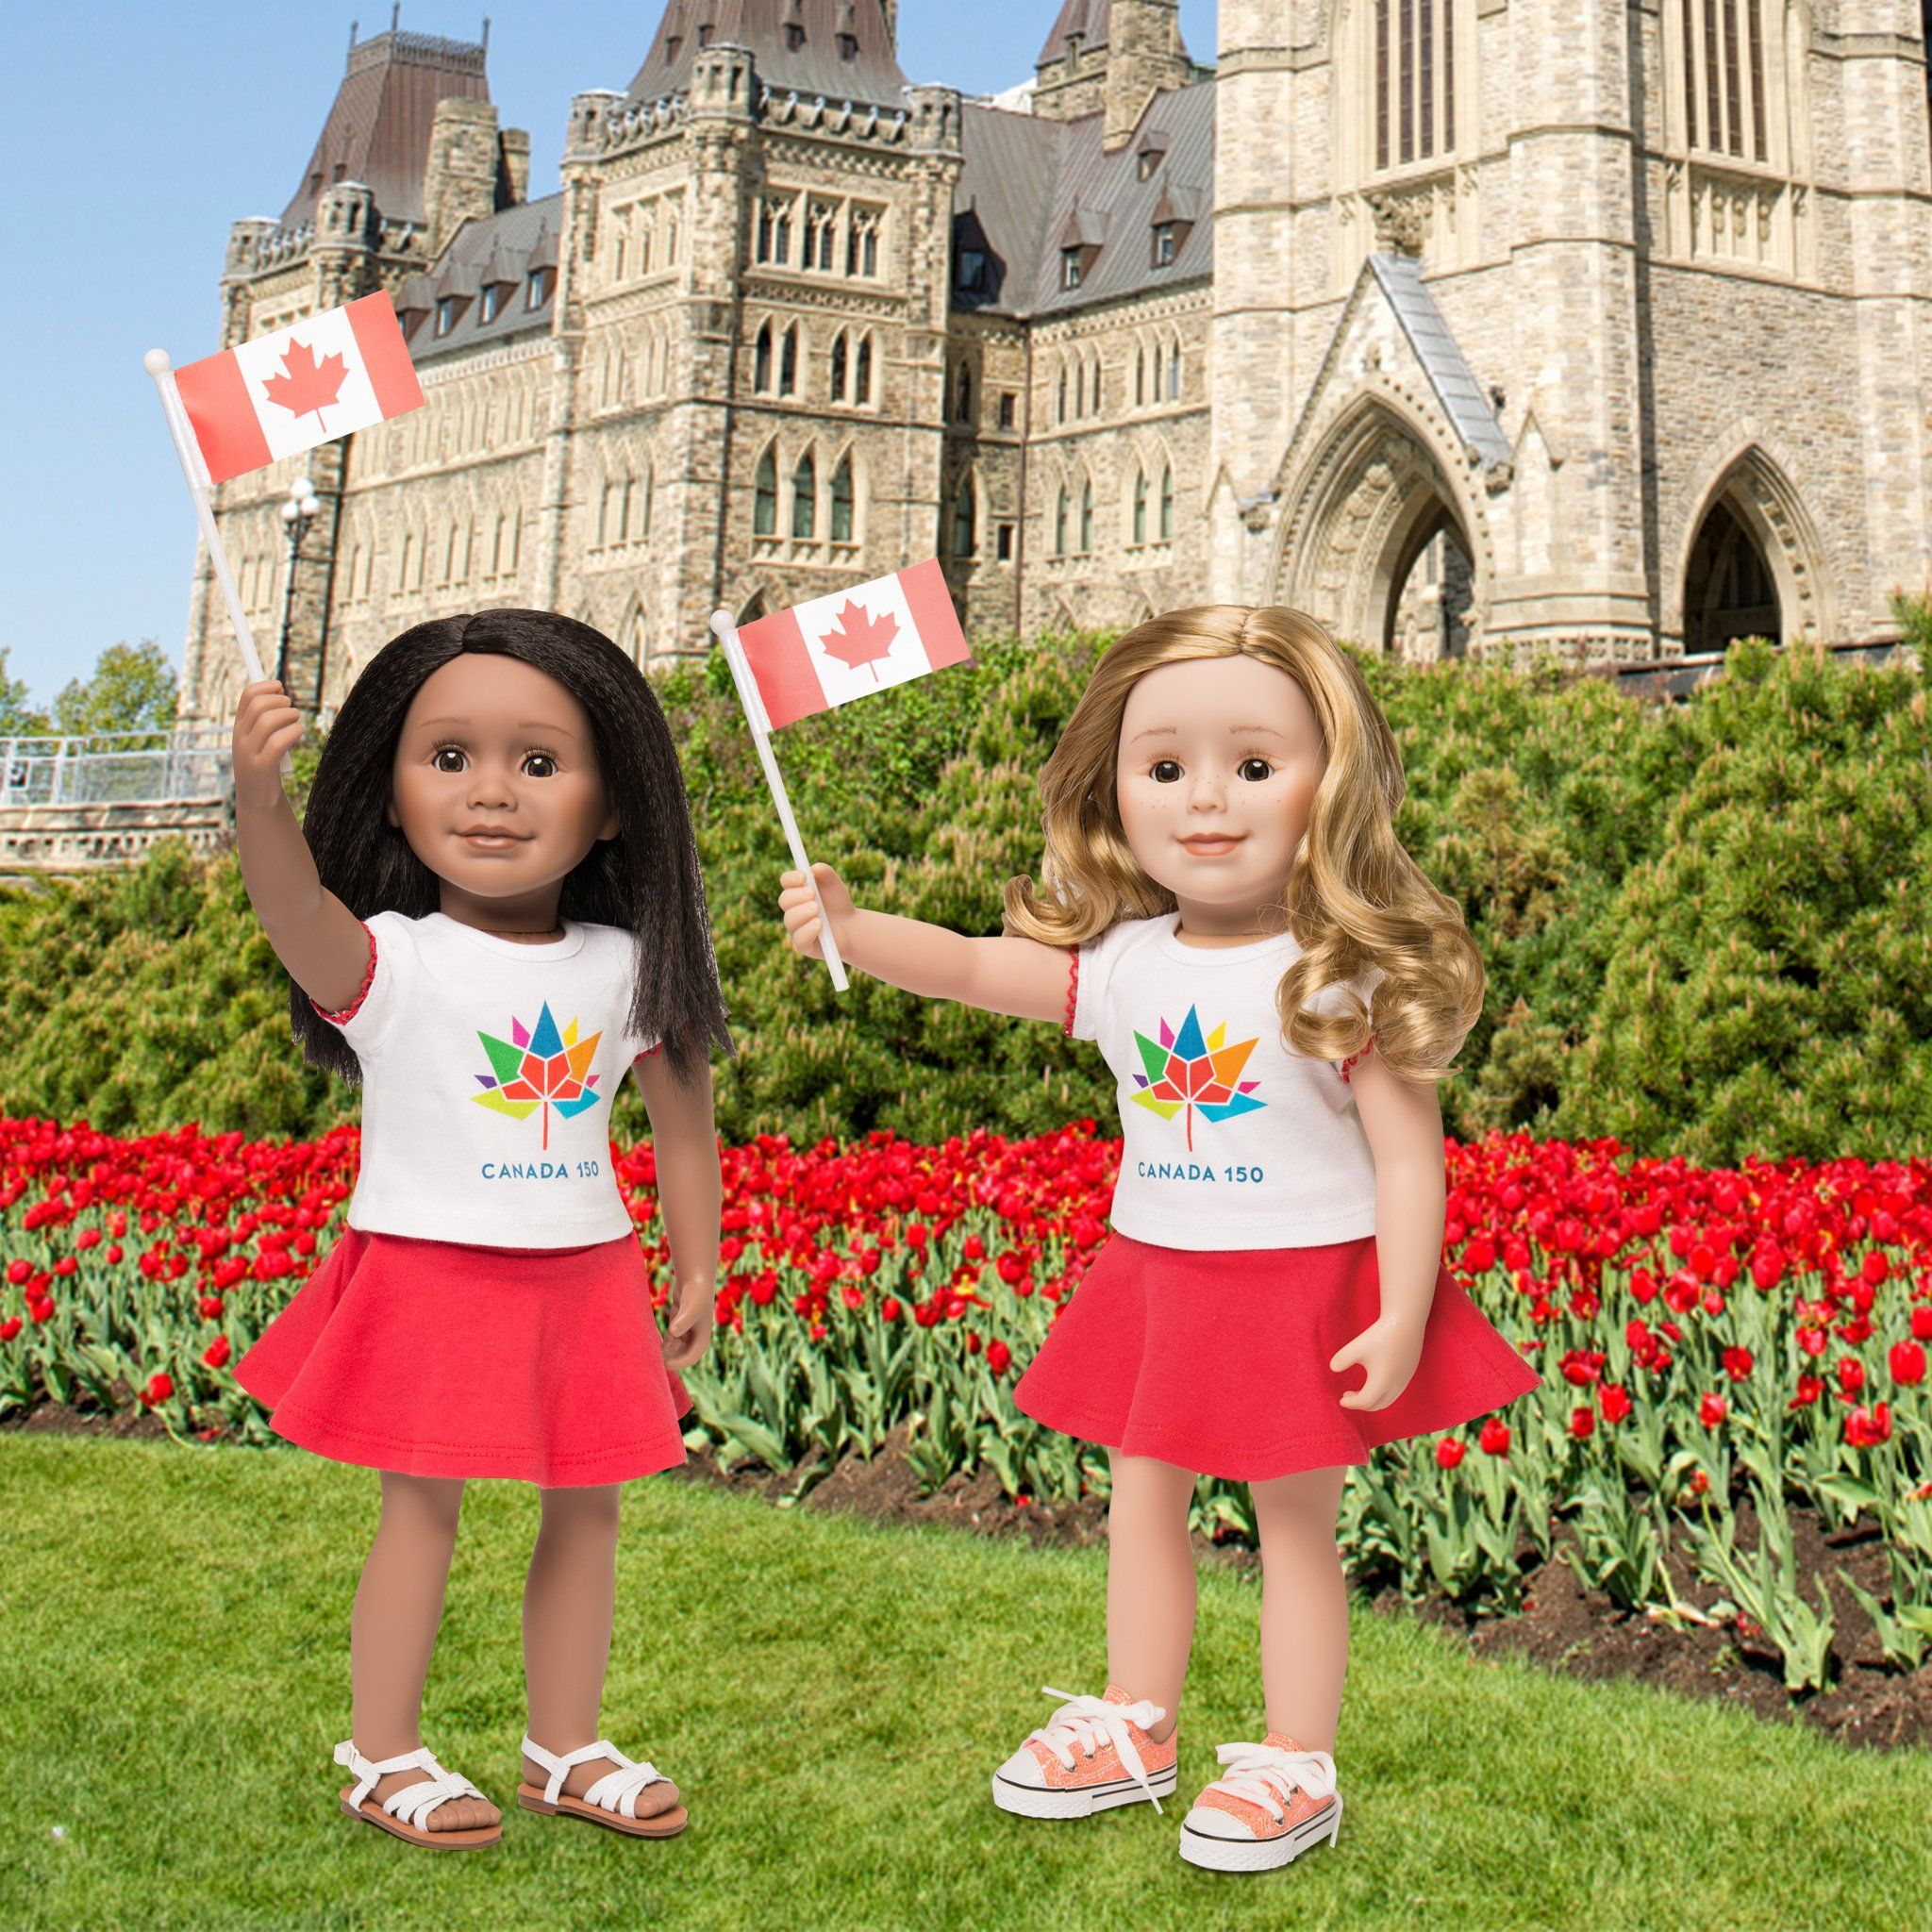 Canada 150 Outfit logo t-shirt, red skirt, Canada flag shown on Maplelea Friends dolls with Criss Cross Sandals.